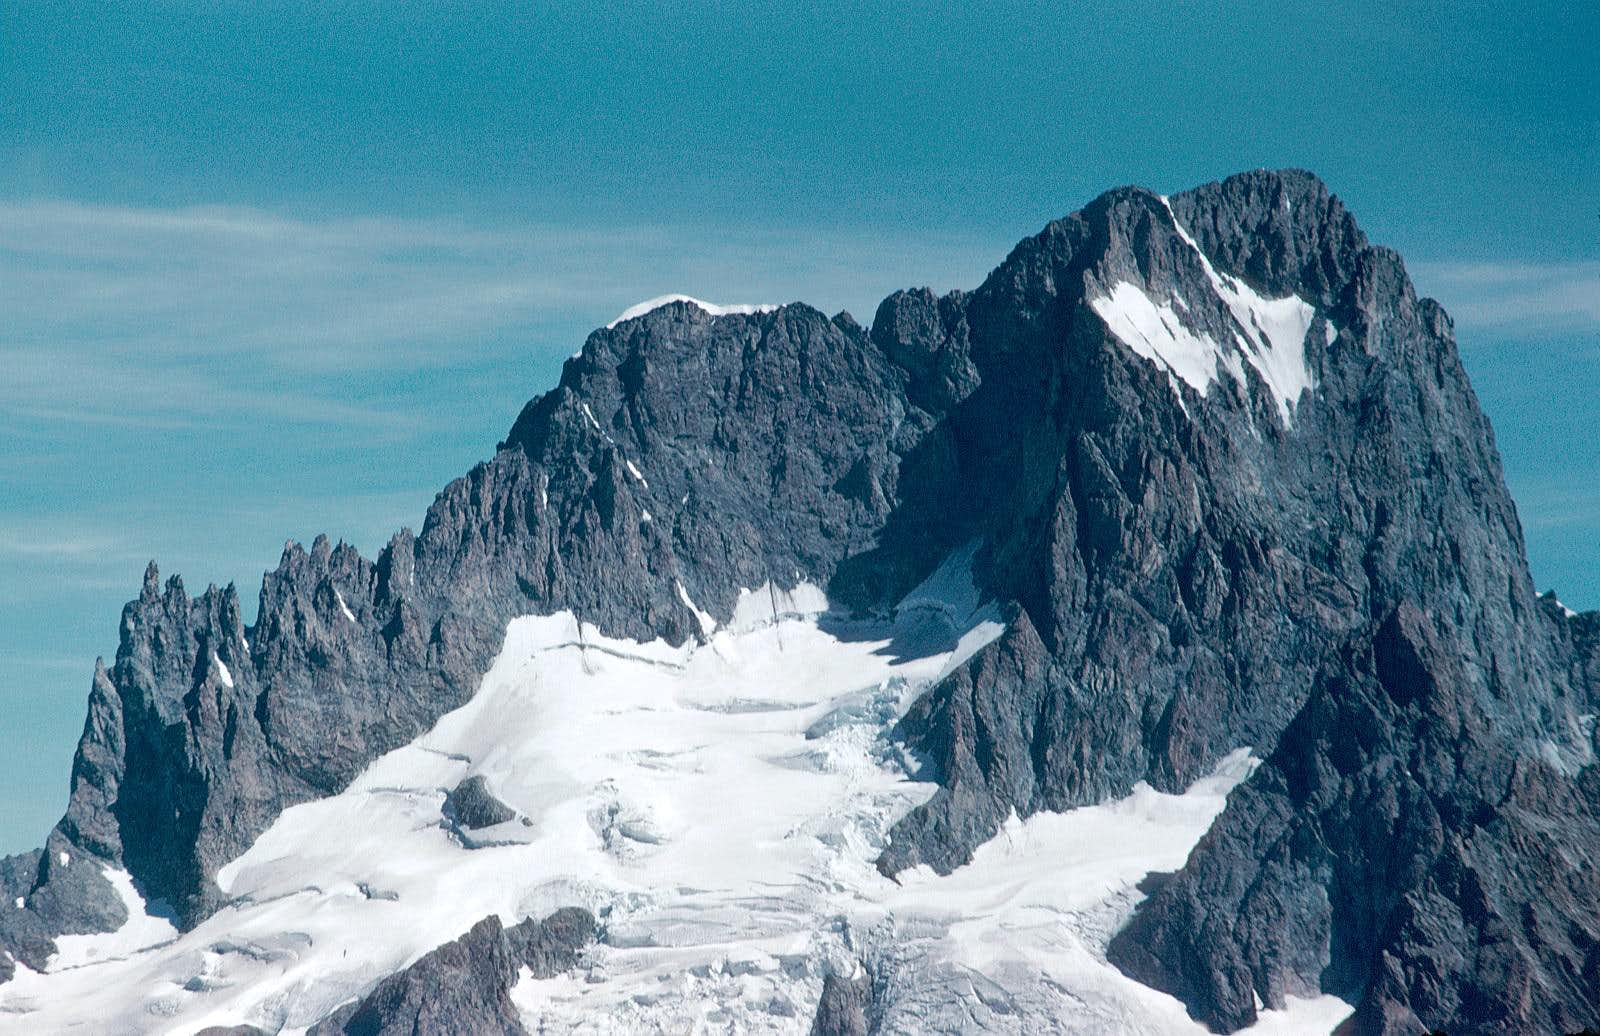 Les Ecrins south-west face